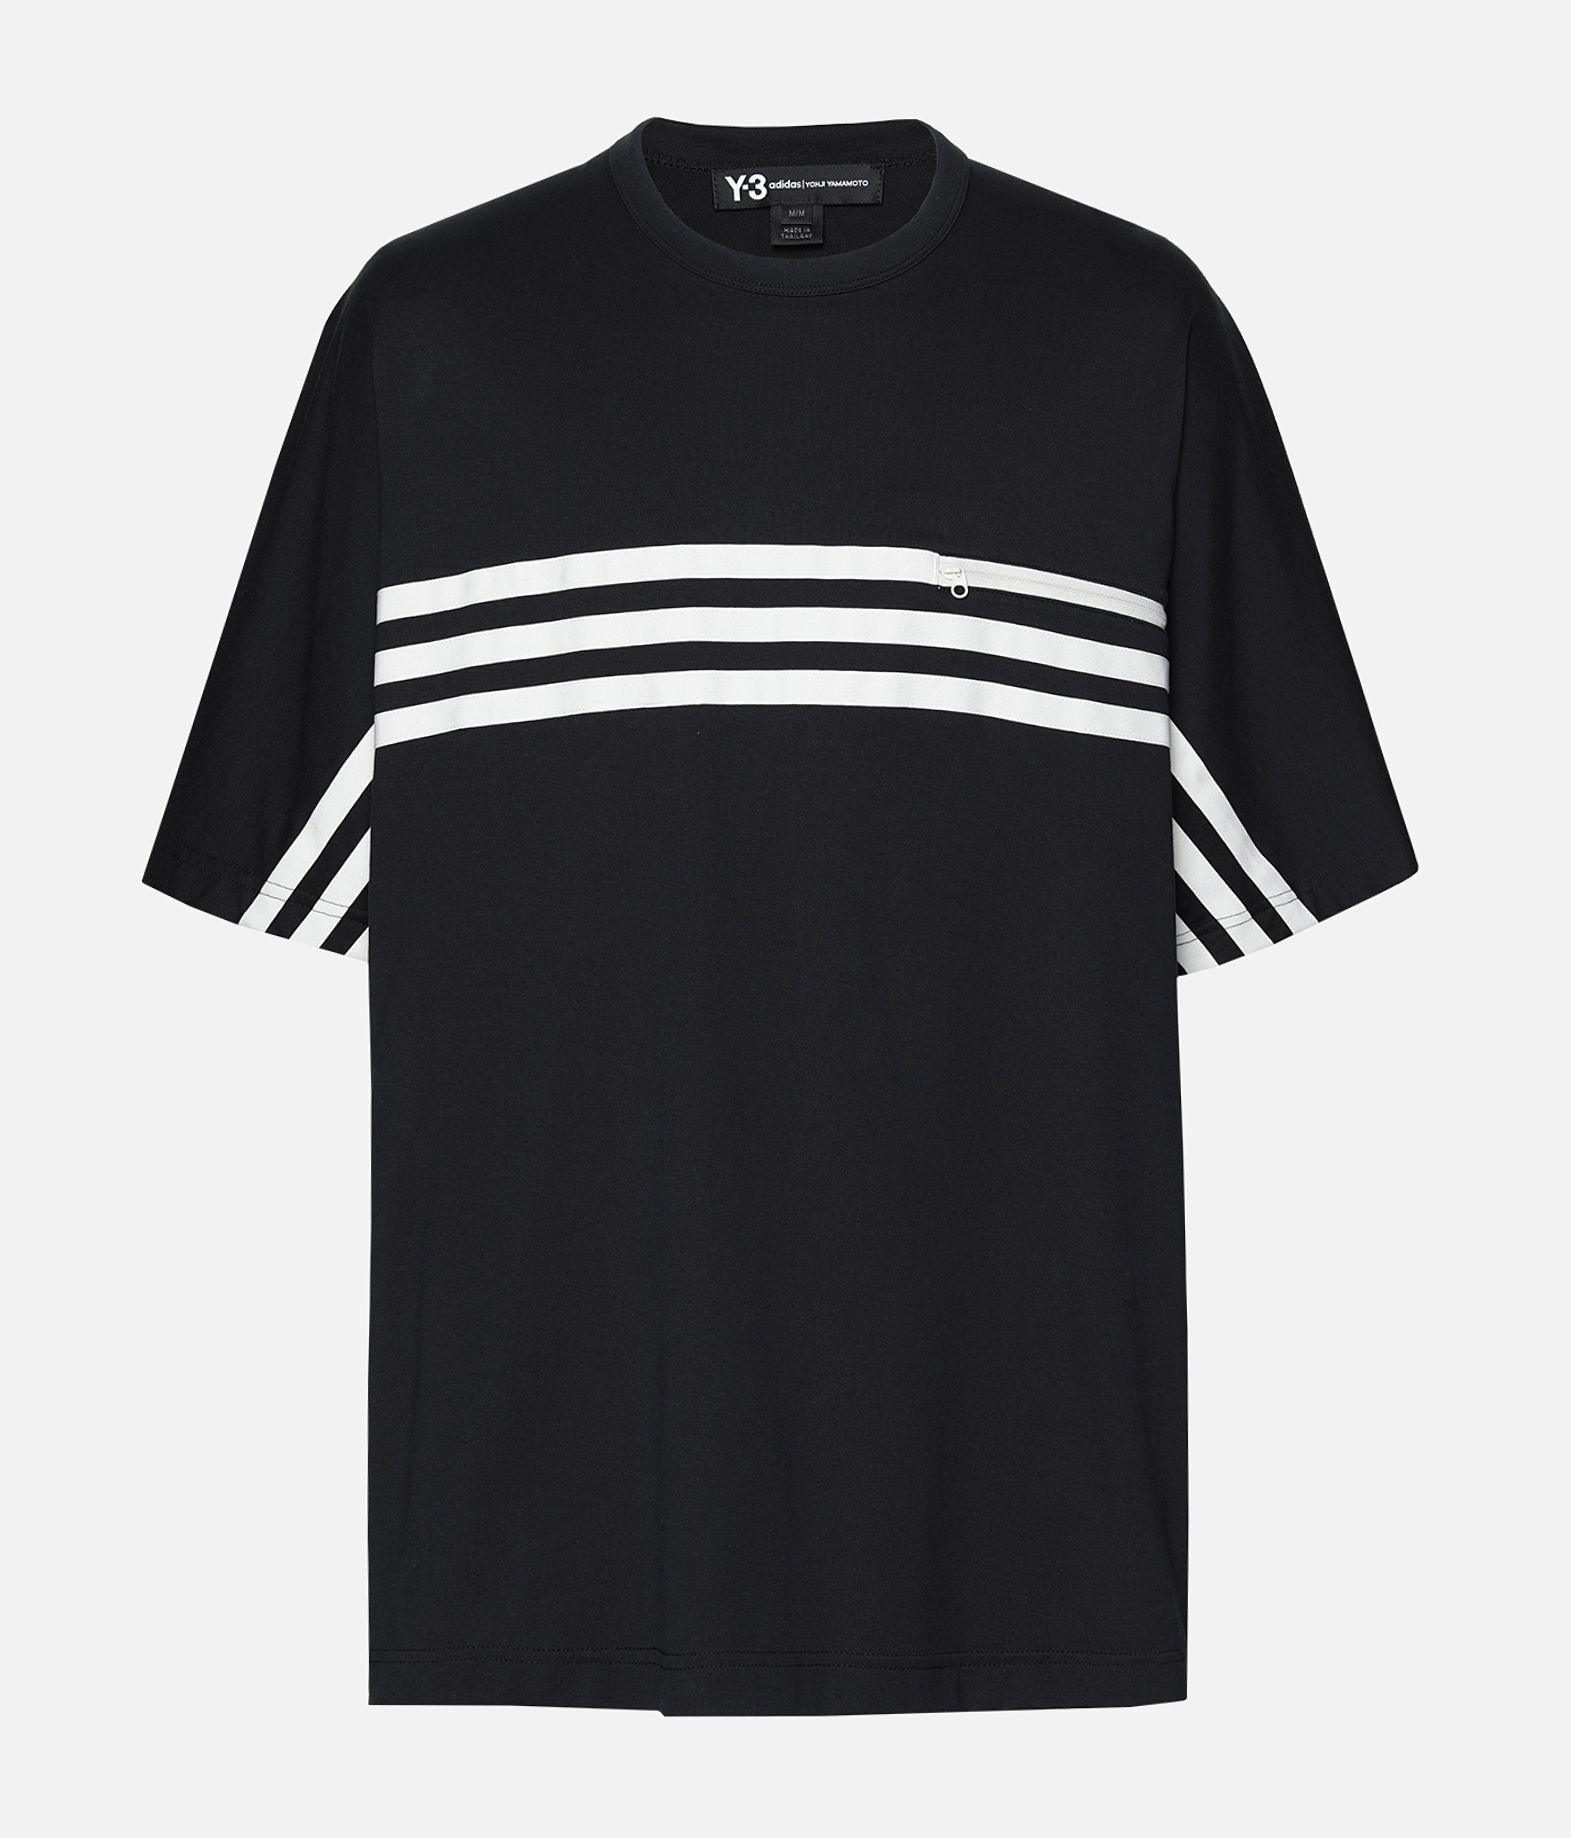 Y-3 Y-3 3-Stripes Packable Tee Short sleeve t-shirt Man f